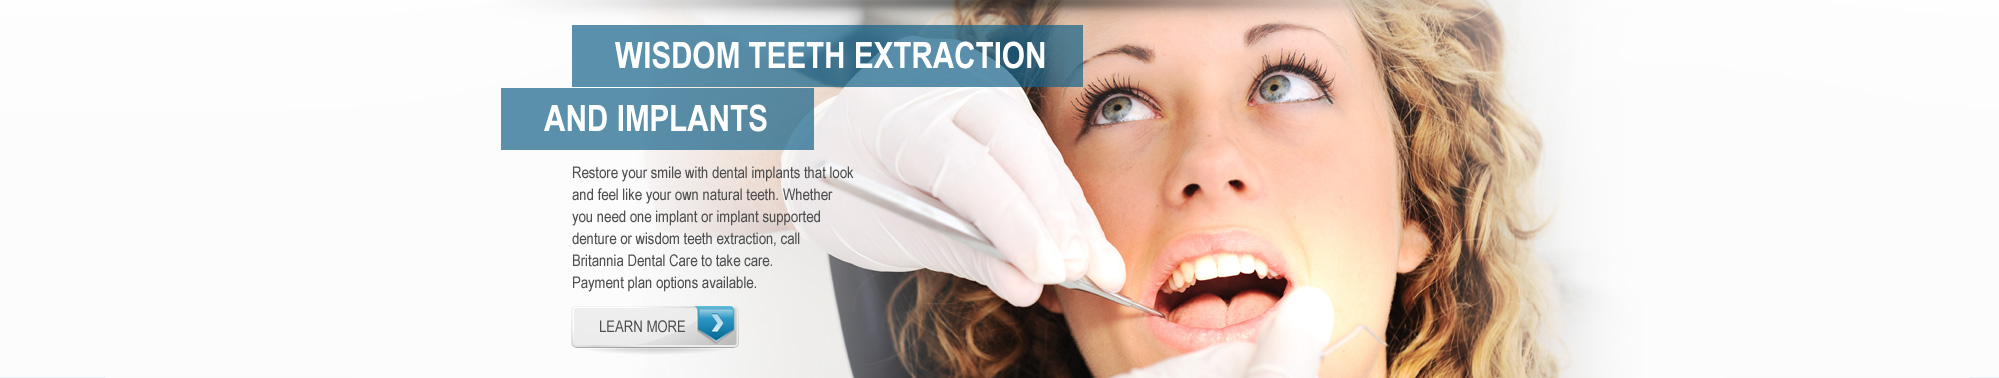 Wisdom Teeth Extraction & Implants